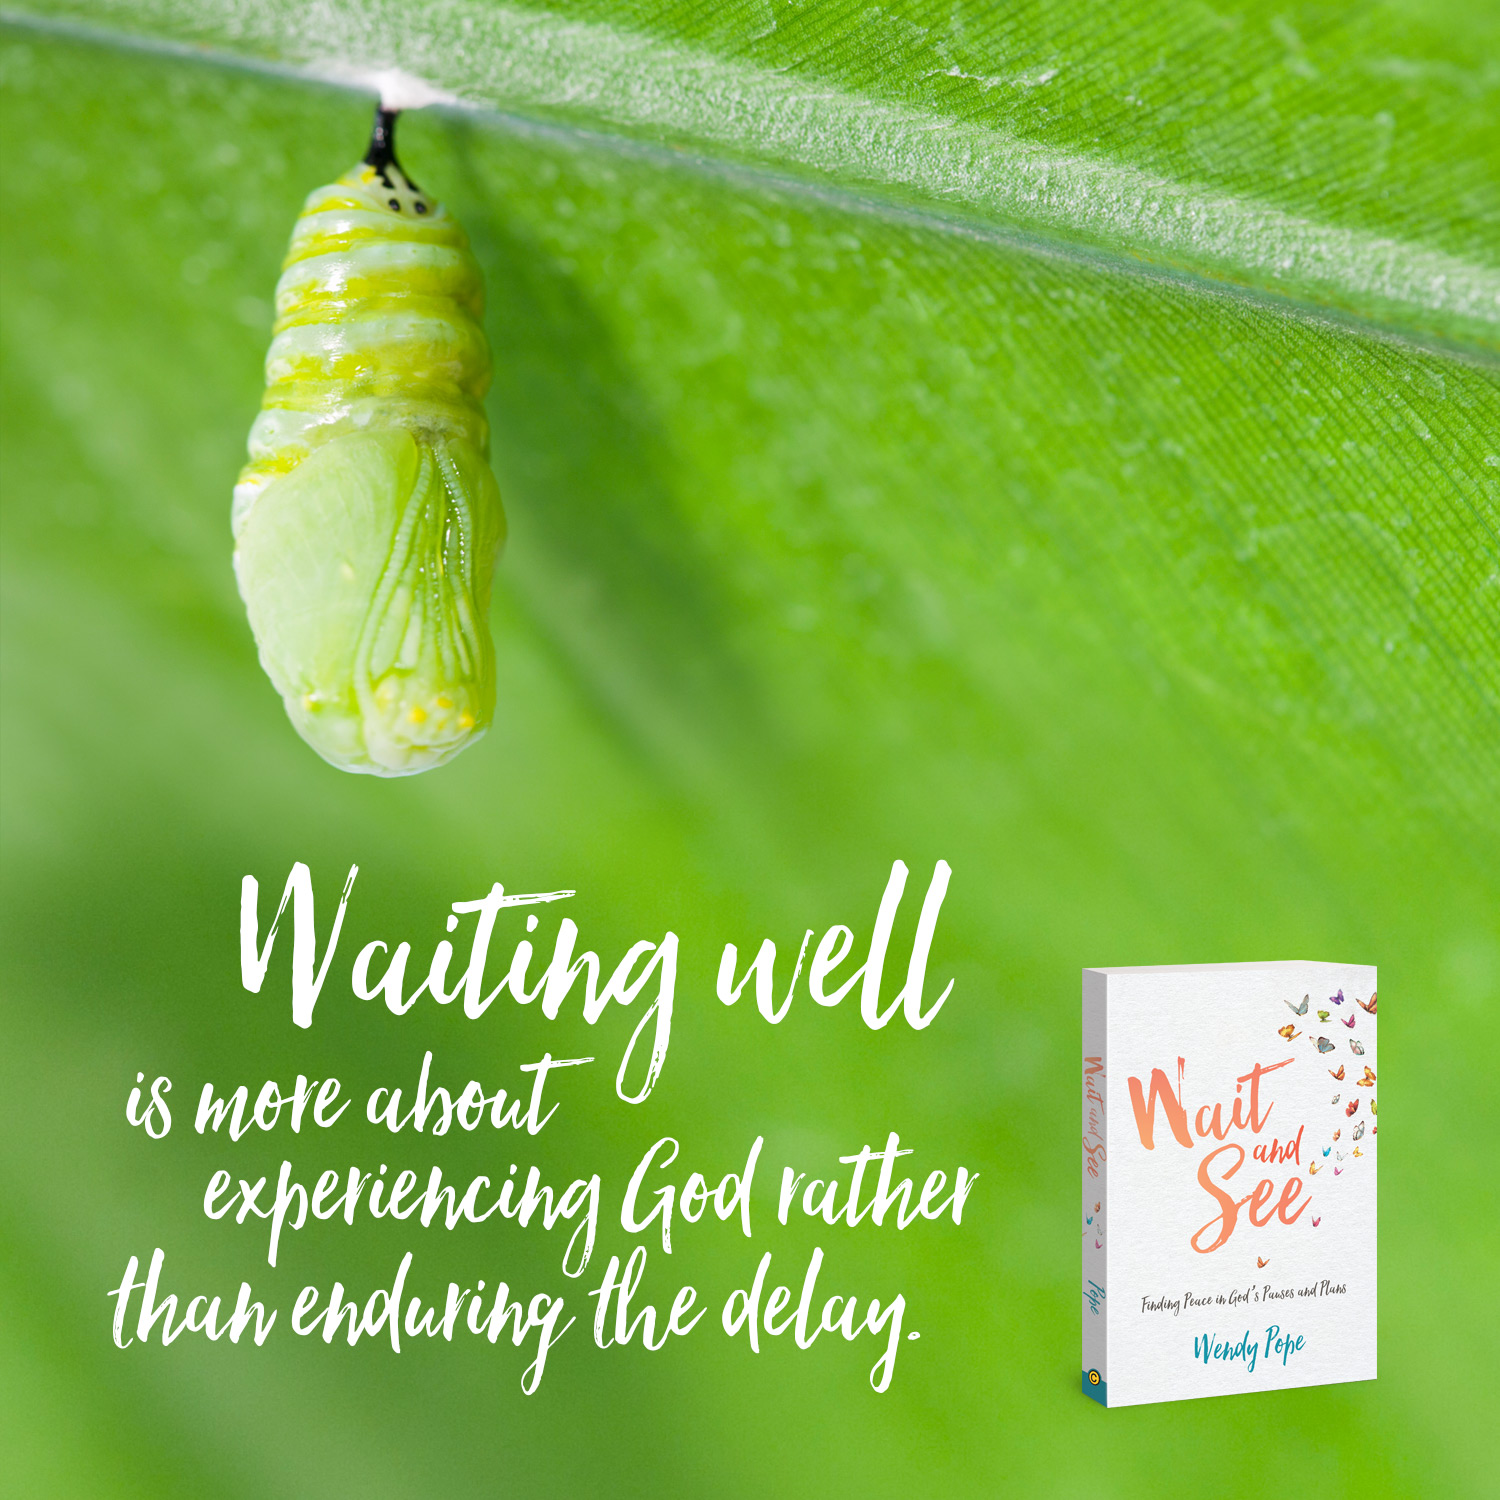 Waiting well is more about experiencing God rather than enduring the delay.